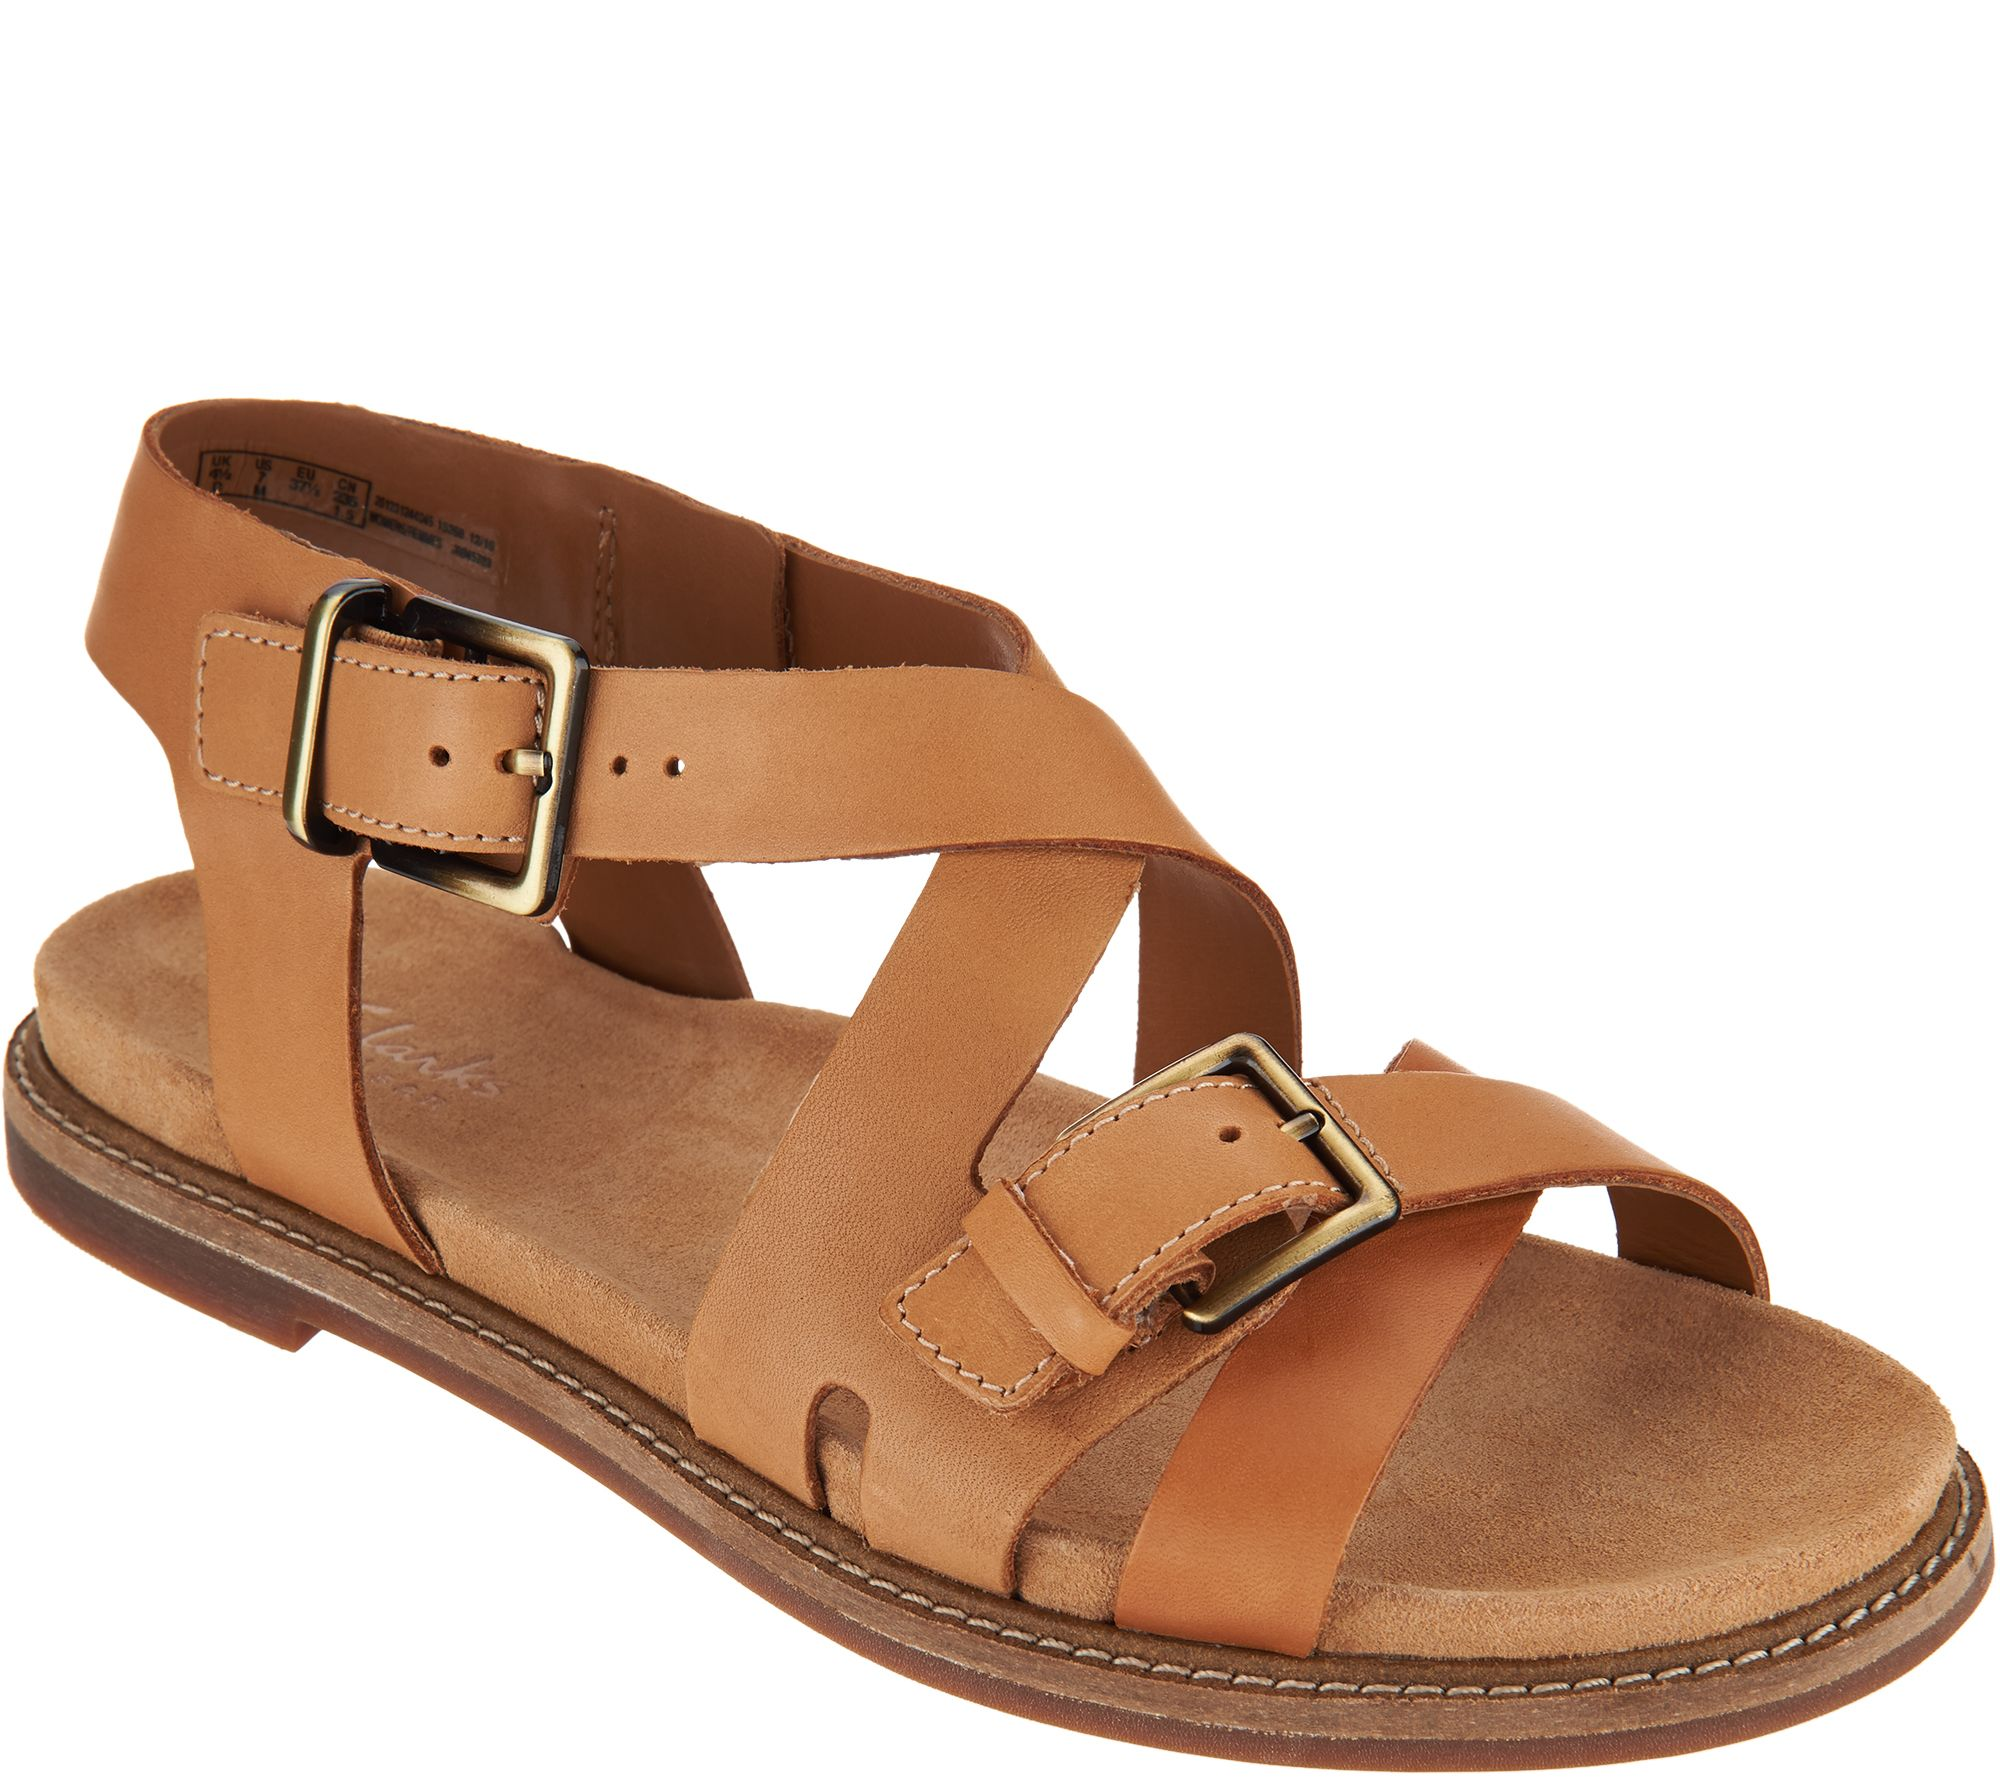 680fa77a2de Clarks Artisan Leather Criss Cross Sandals - Corsio Bambi - Page 1 — QVC.com